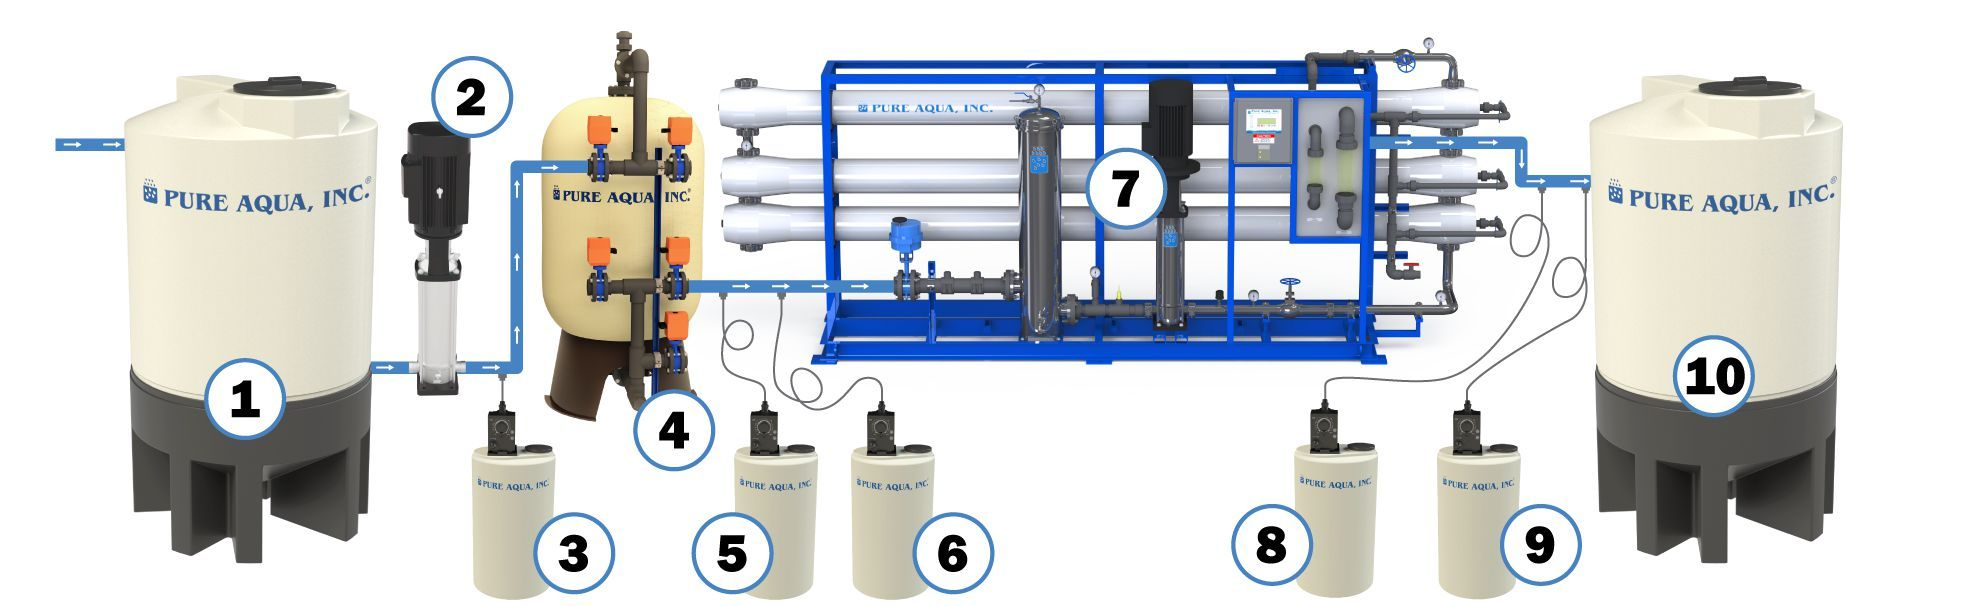 hight resolution of industrial reverse osmosis system ro diagram